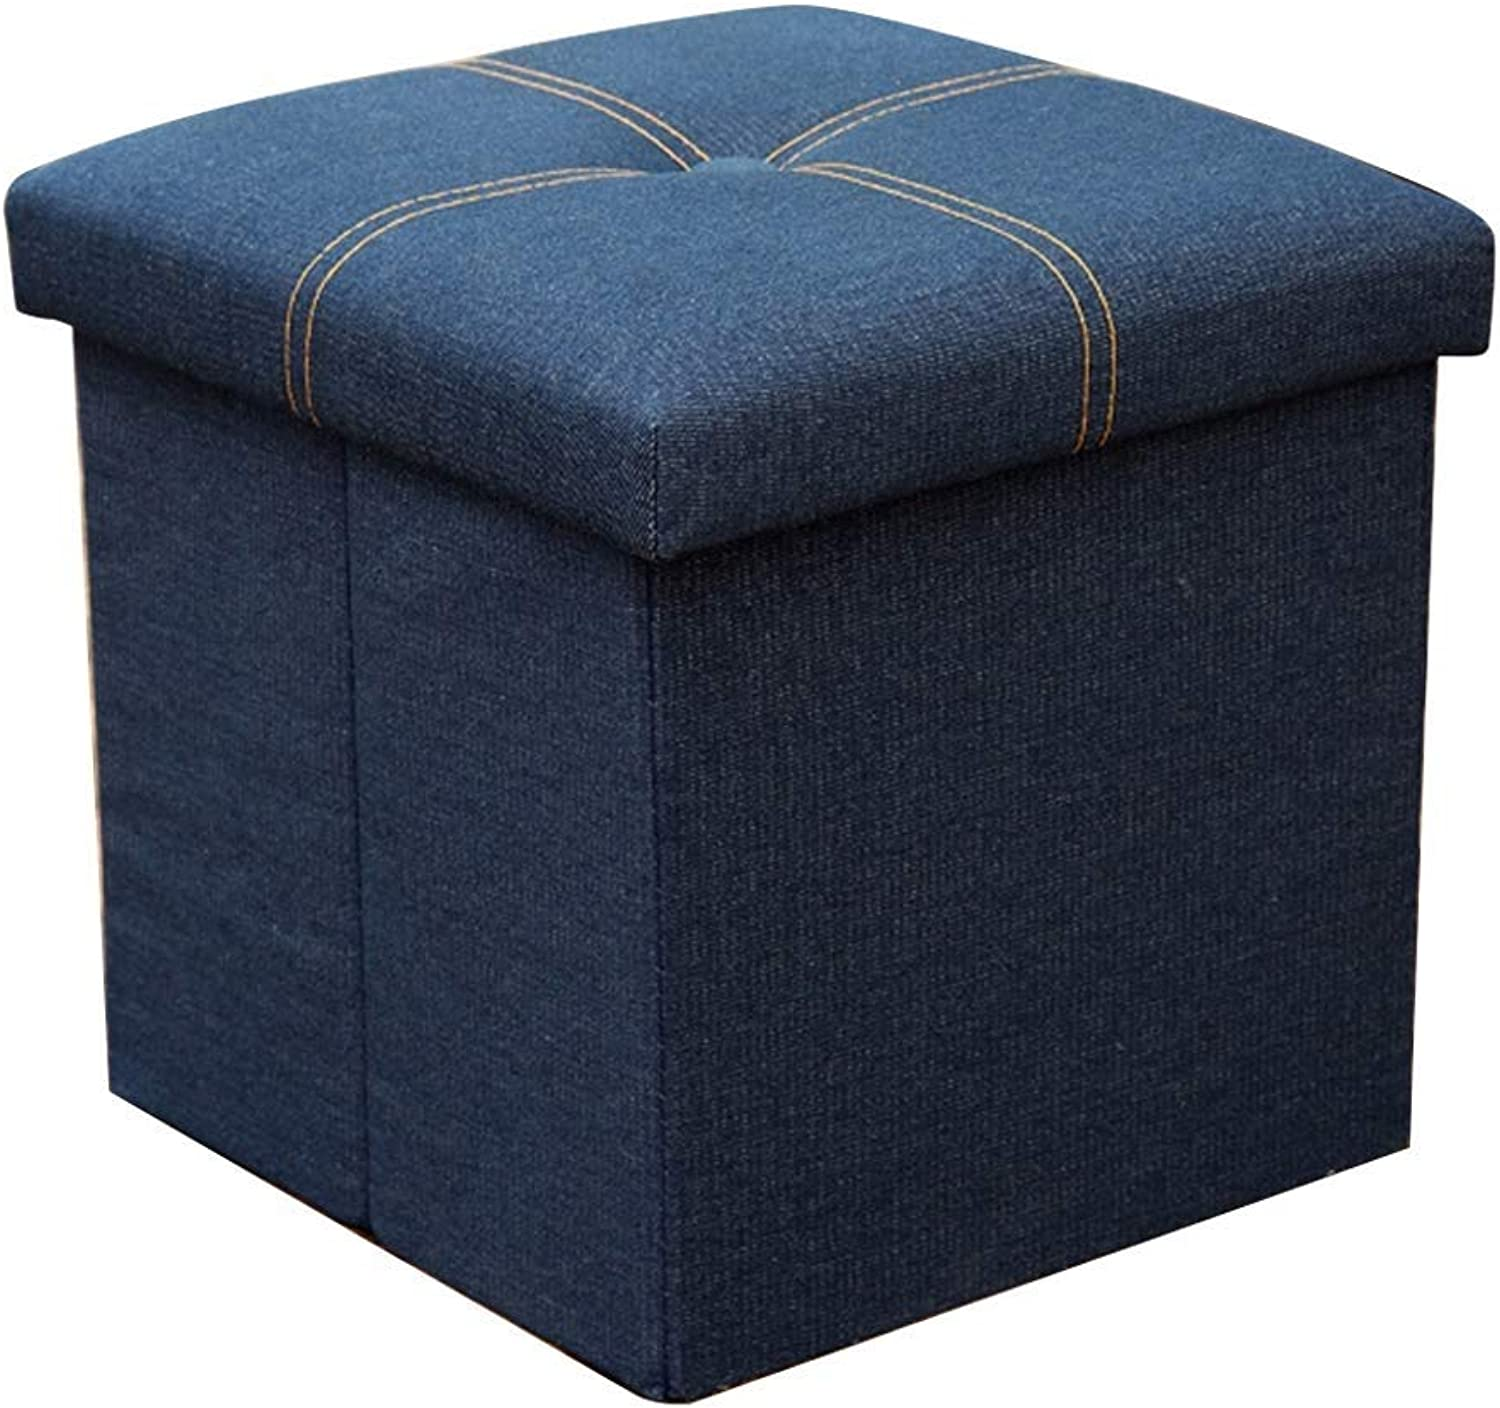 Cotton and Linen Foldable Storage Stool, Sturdy and Durable, Load-Bearing, Strong Storage Space, Large Storage Books, Toys, Debris, Space, Foyer, shoes Bench (color   C, Size   30x30x30cm)